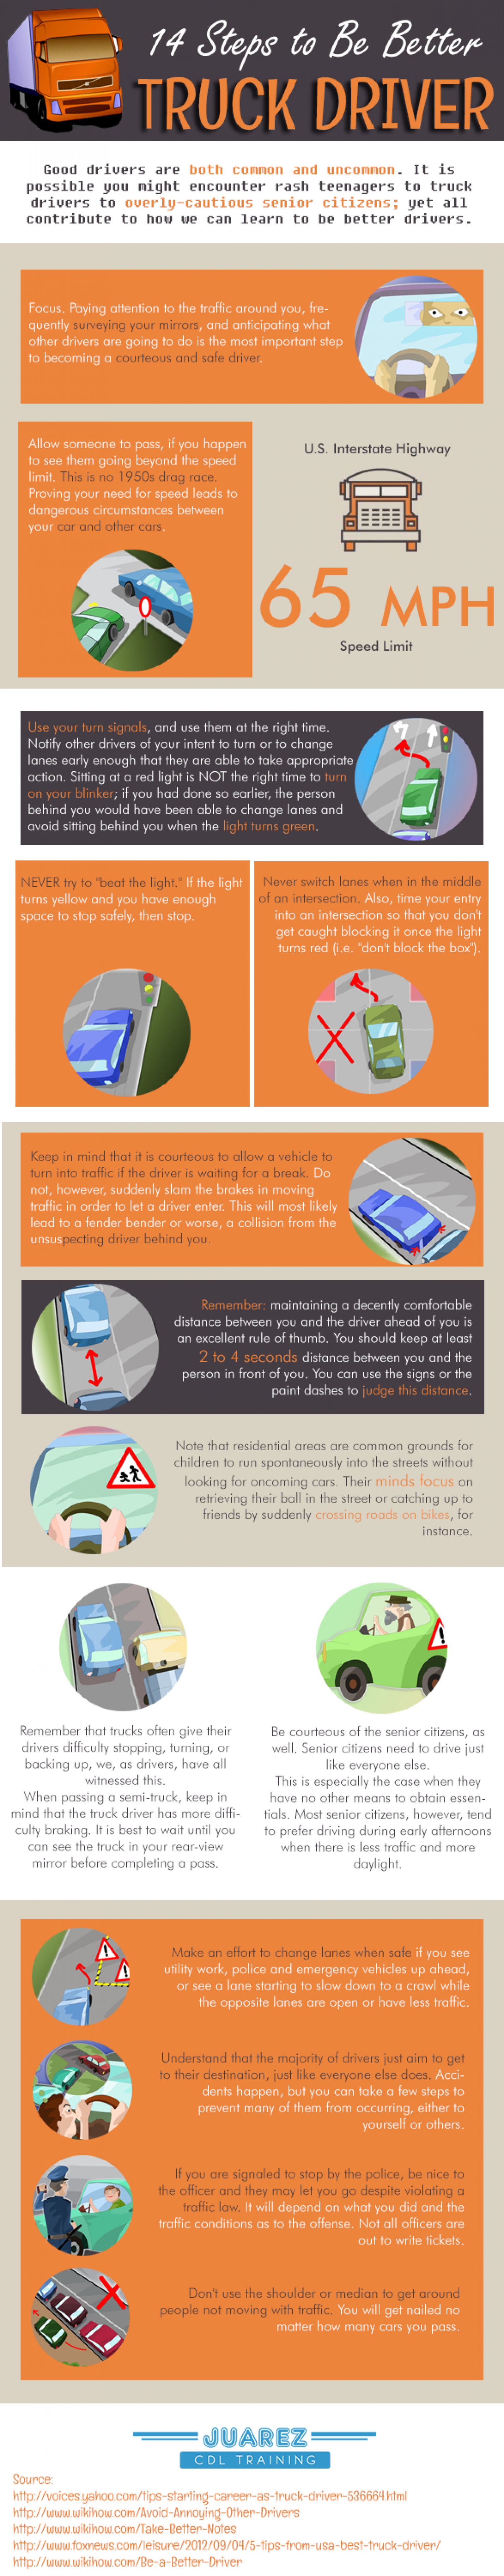 14 Steps to Be Better Truck Driver Infographic